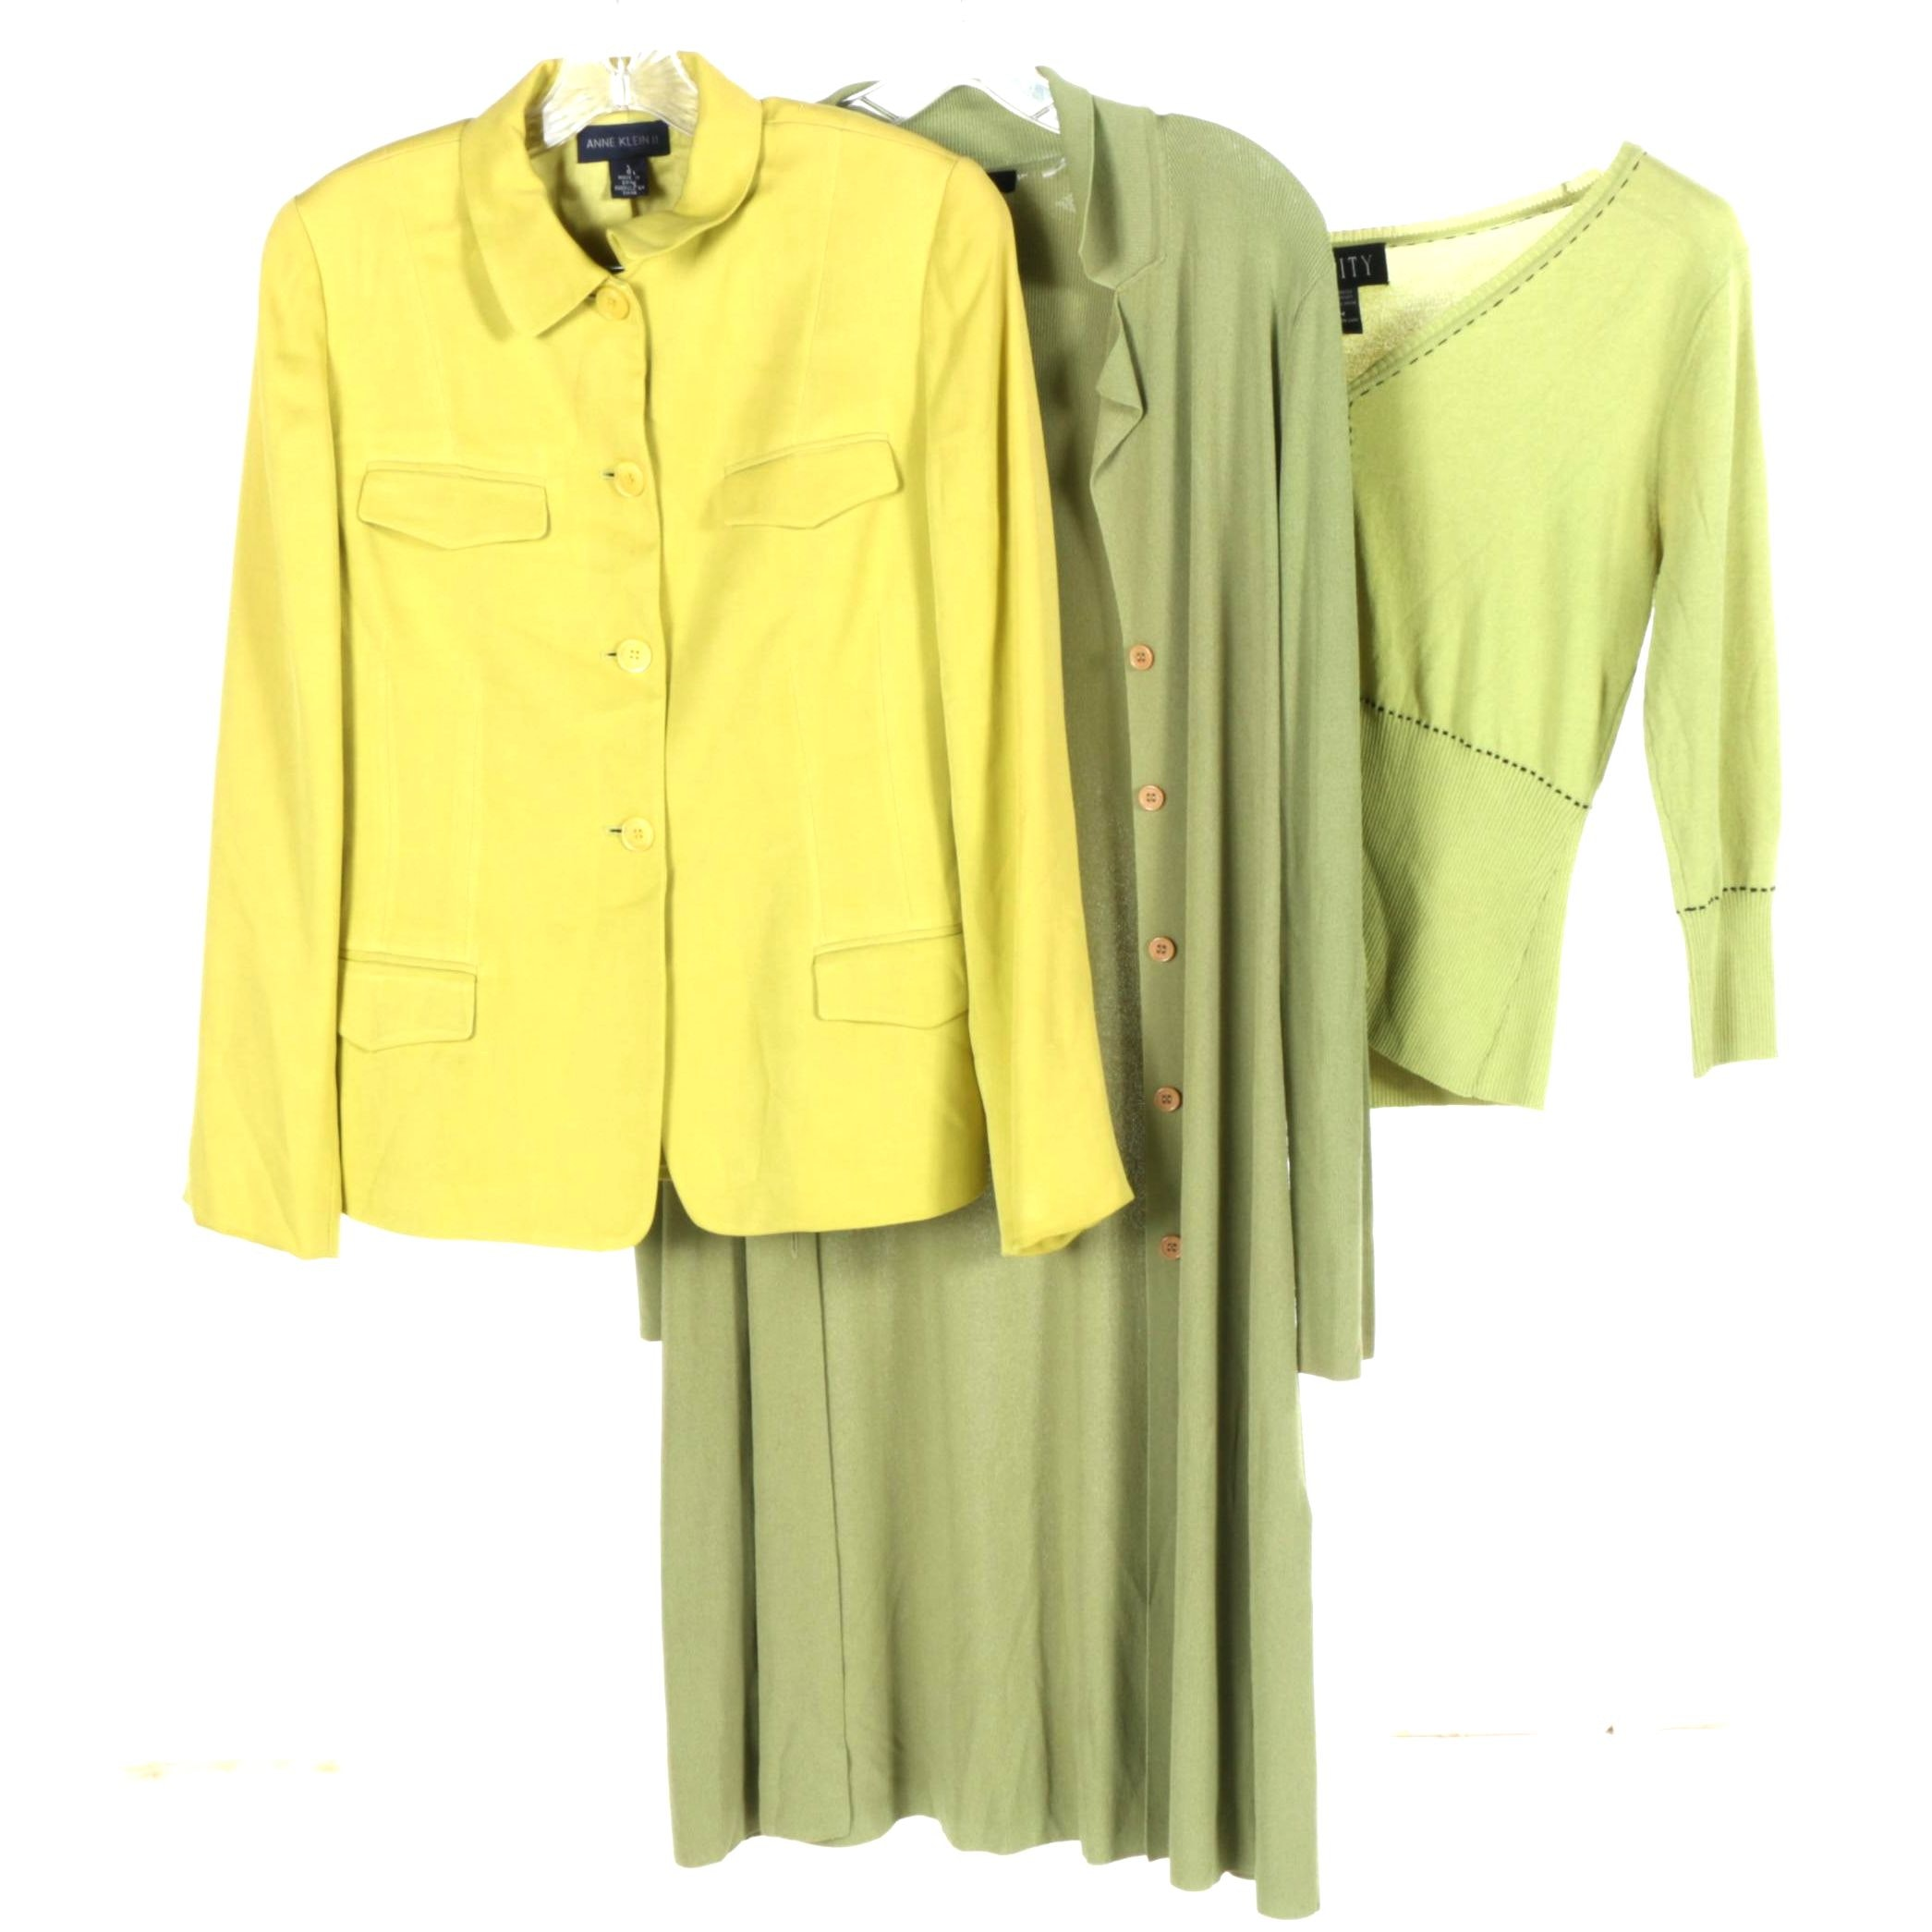 Women's Cardigans and Jacket Including BCBG